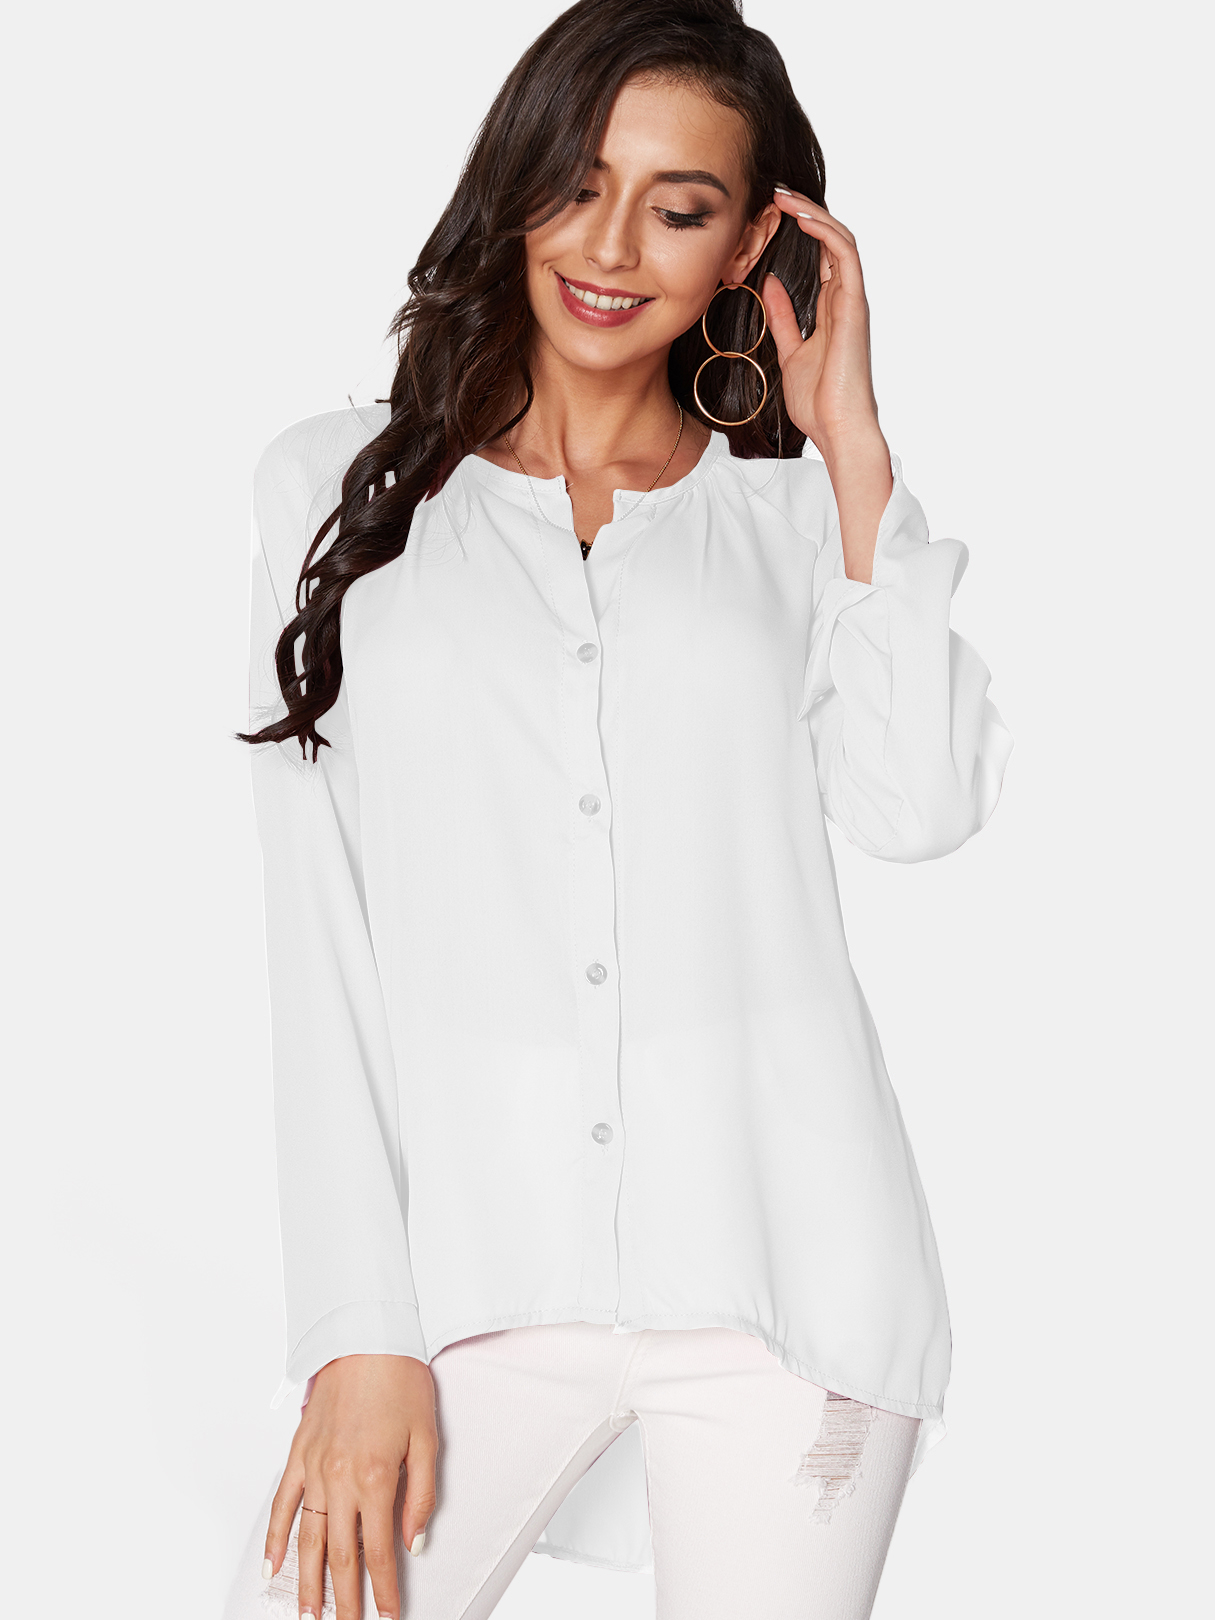 White Cozy V-neck Long Sleeves Button-down Chiffon Blouse купить недорого в Москве